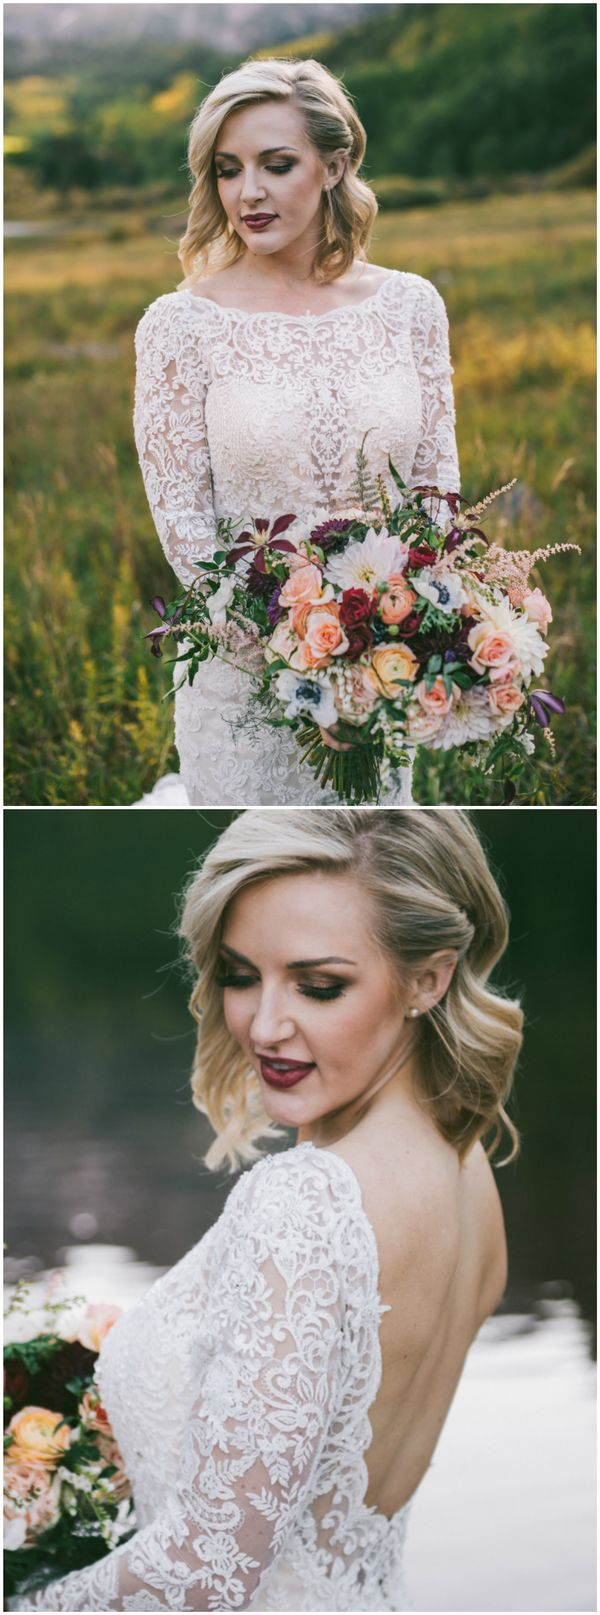 Wedding hairstyle, short bridal hair, curled locks, dark maroon lipstick, smokey eye, lace wedding dress, pin to your own inspiration board // Blue Elephant Photography